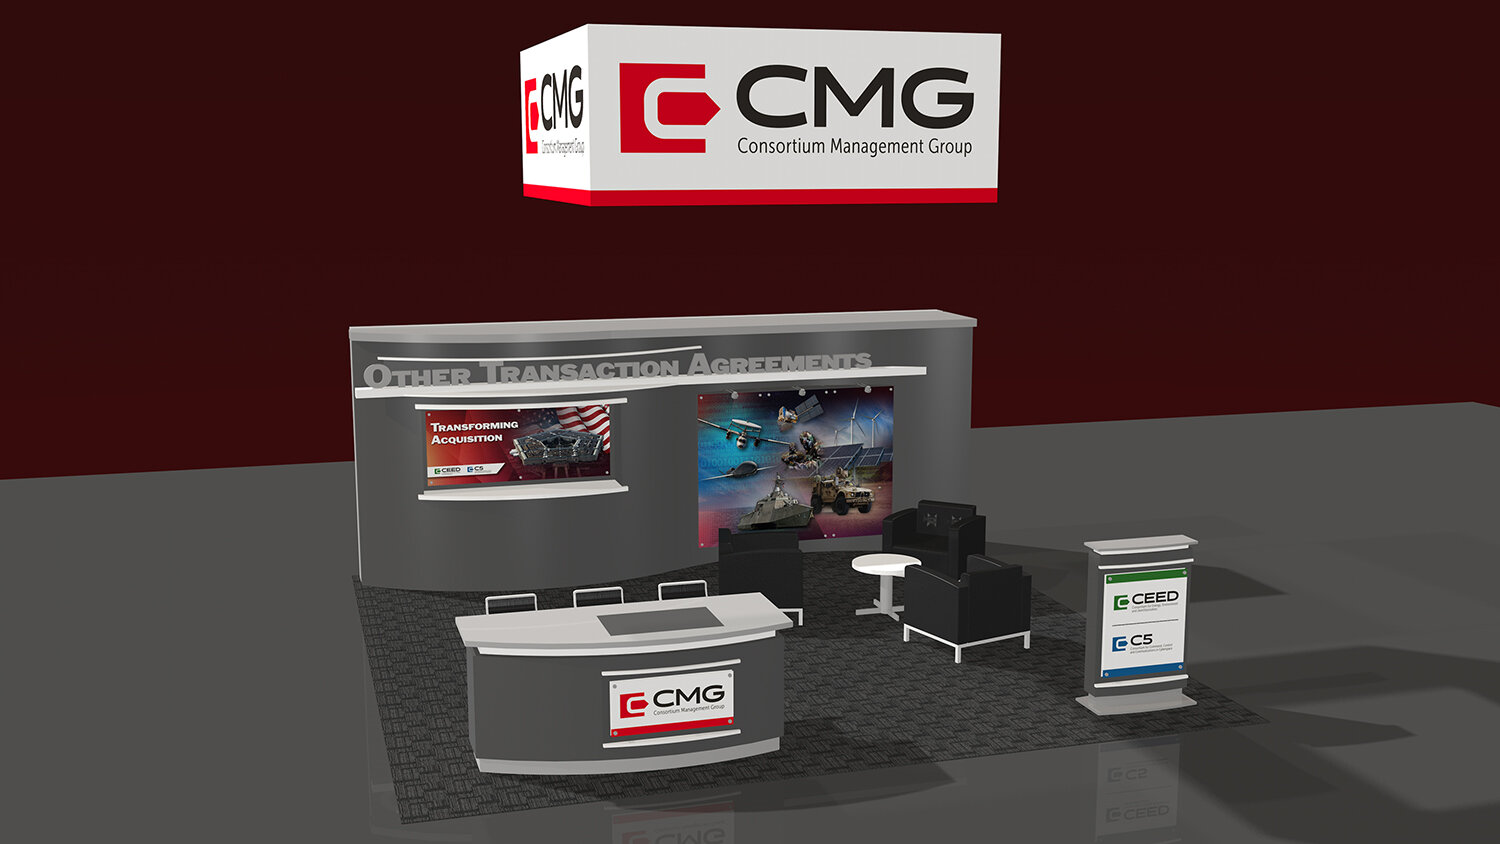 Graphic Design — Trade Show Booths, Displays & Exhibits